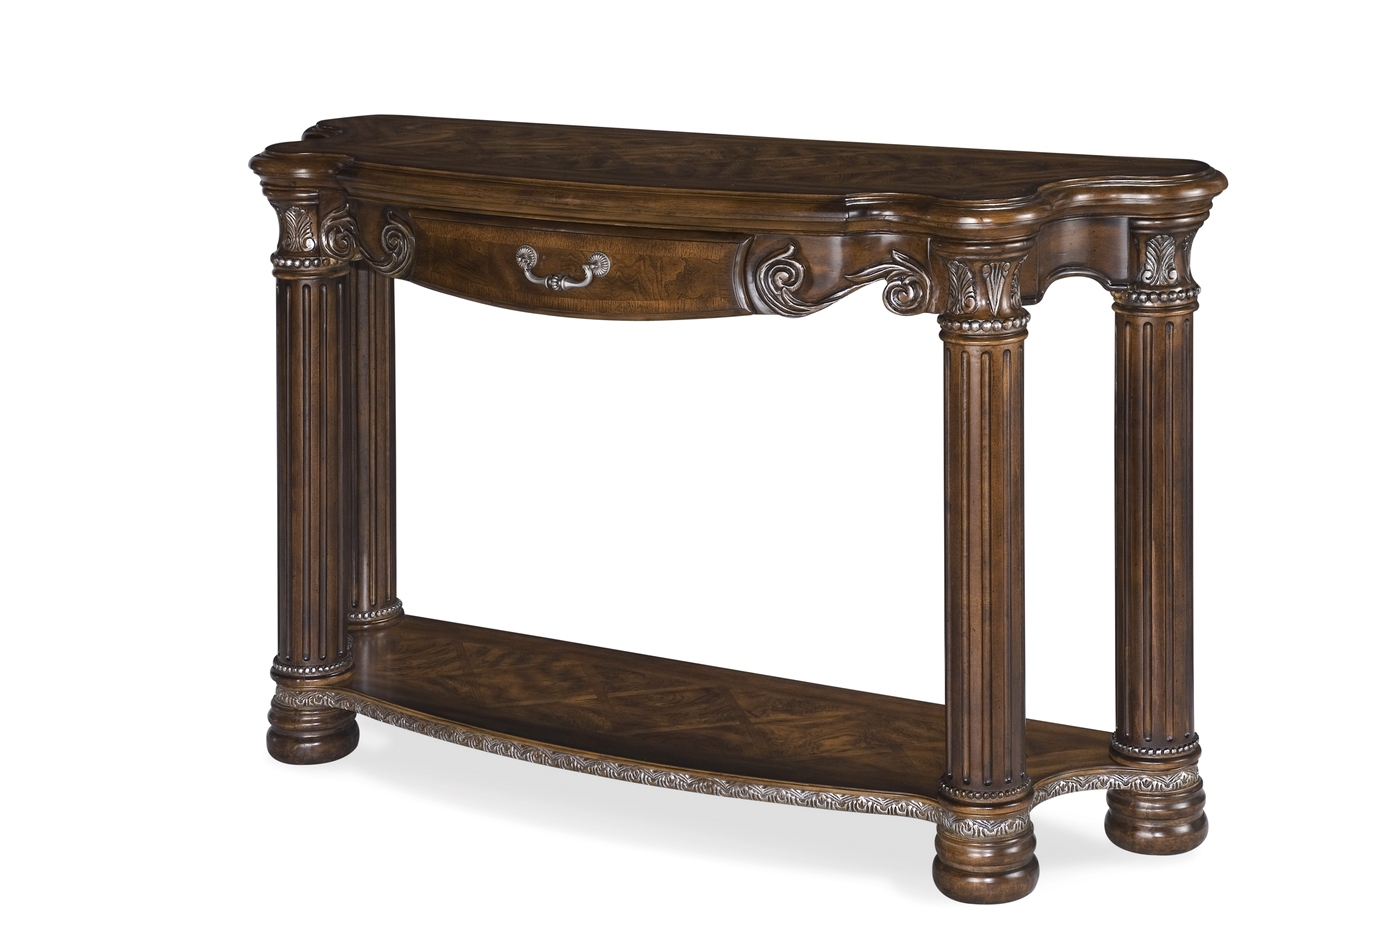 michael amini monte carlo ii cafe noir traditional console table by aico. Black Bedroom Furniture Sets. Home Design Ideas